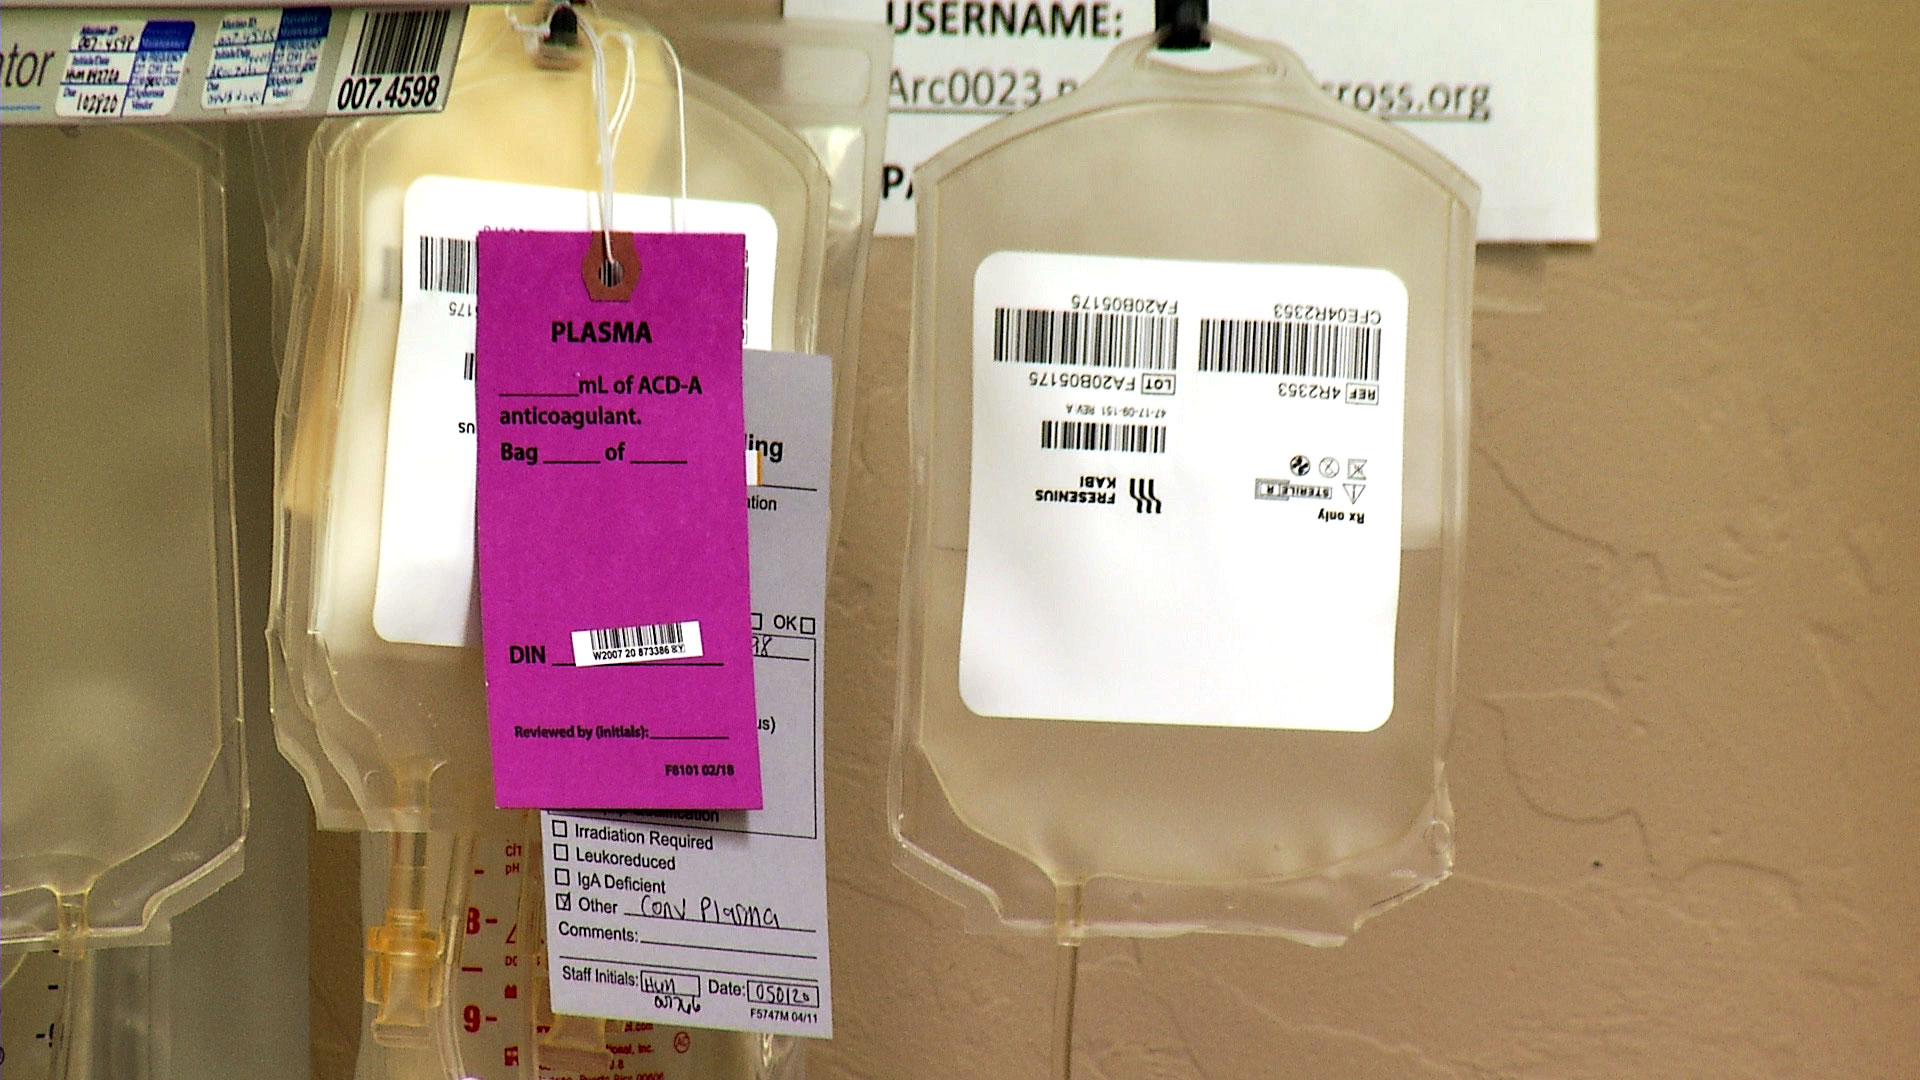 Various collection bags at an American Red Cross blood donation center in Tucson on May 1, 2020. A tag on one of the bags indicates it will be used to collect convalescent plasma from a COVID-19 survivor.